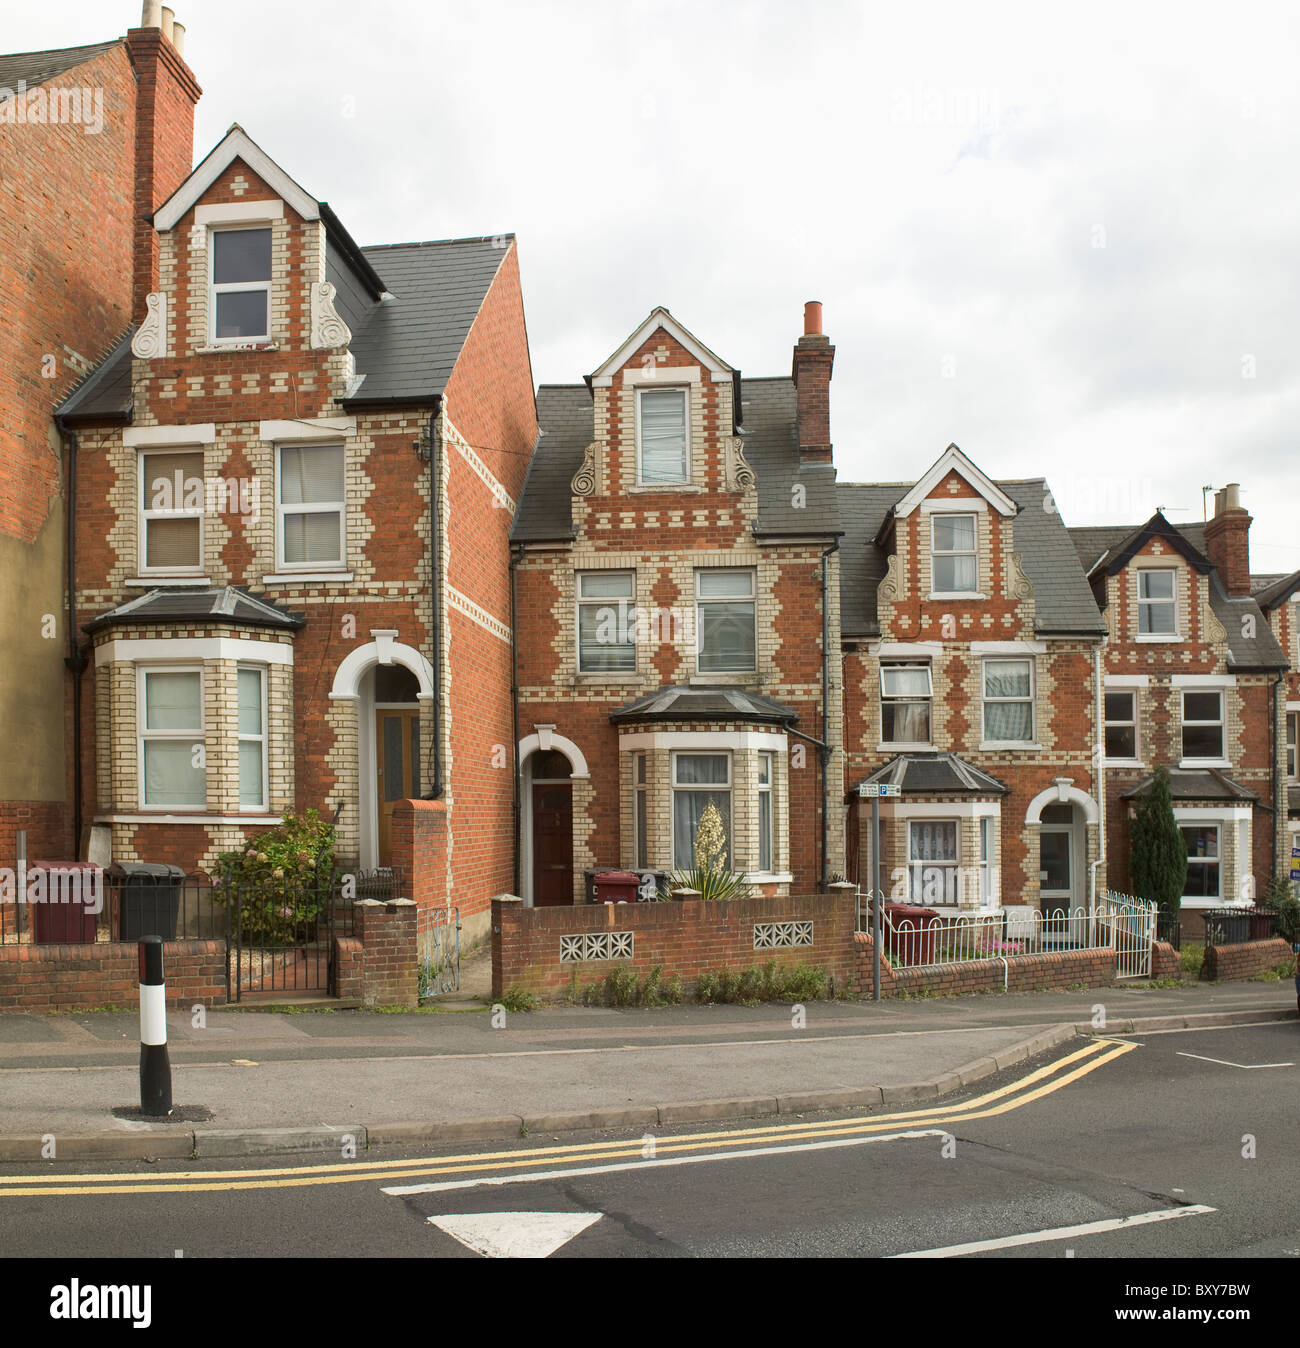 Reading, Berkshire. Pell Street, staggered row of terraced houses, with yellow and red brick in diaper patterns. - Stock Image